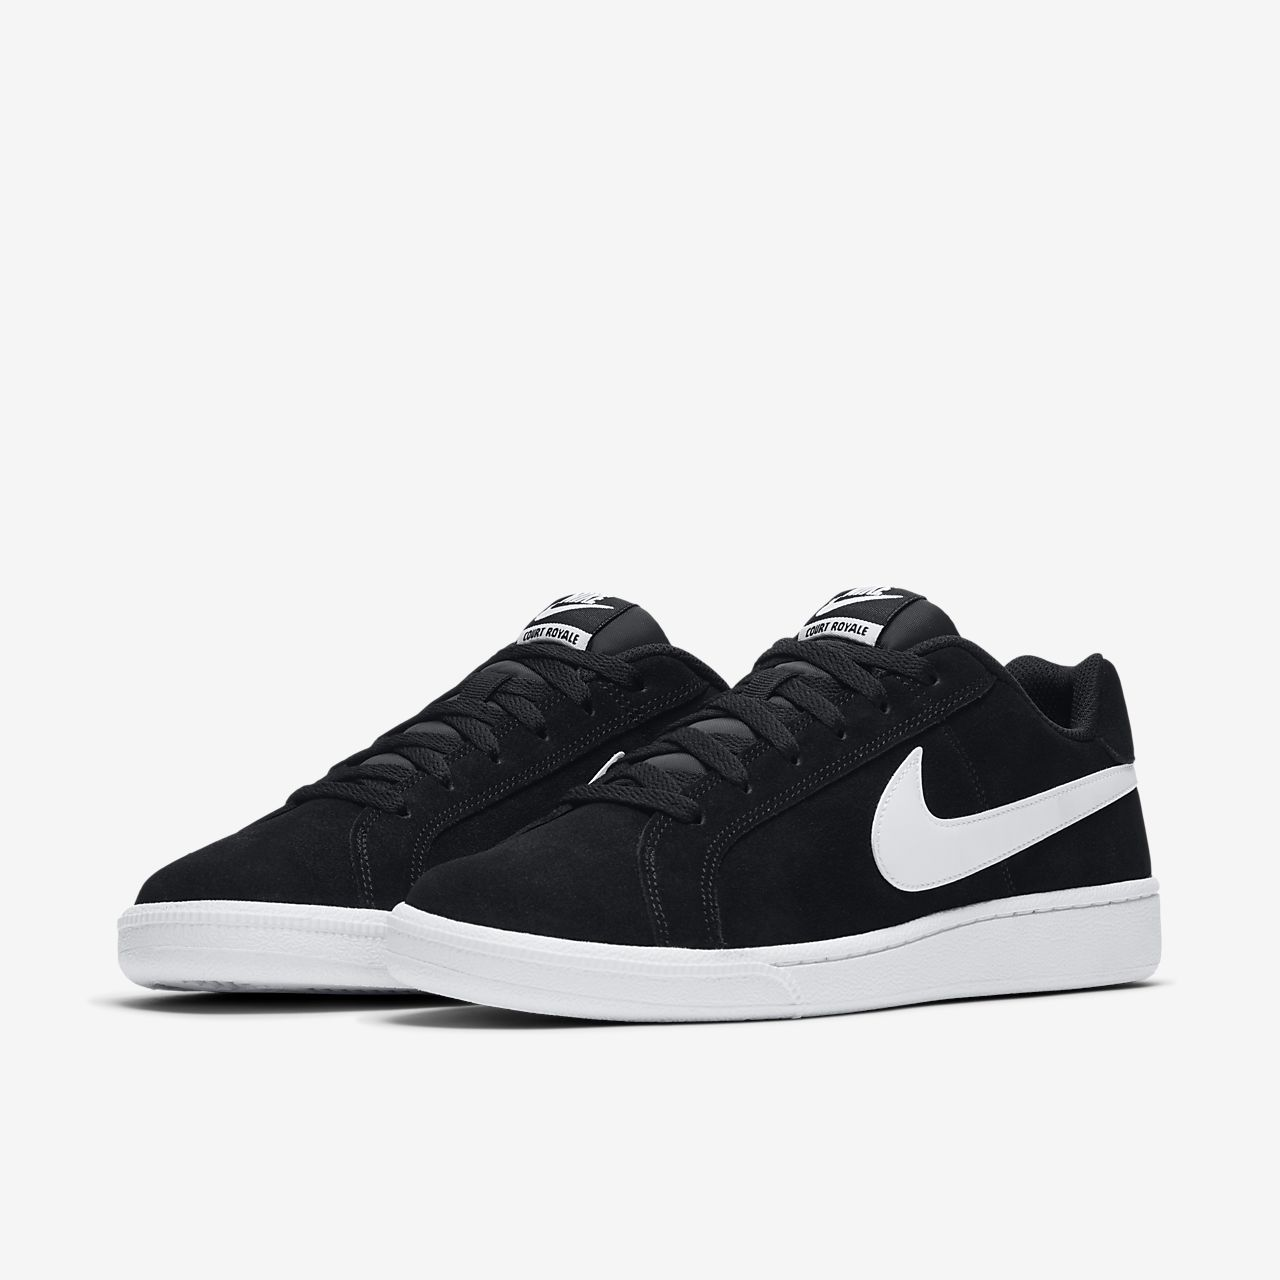 a7aef51969f Low Resolution NikeCourt Royale Tennisschoen voor heren NikeCourt Royale  Tennisschoen voor heren